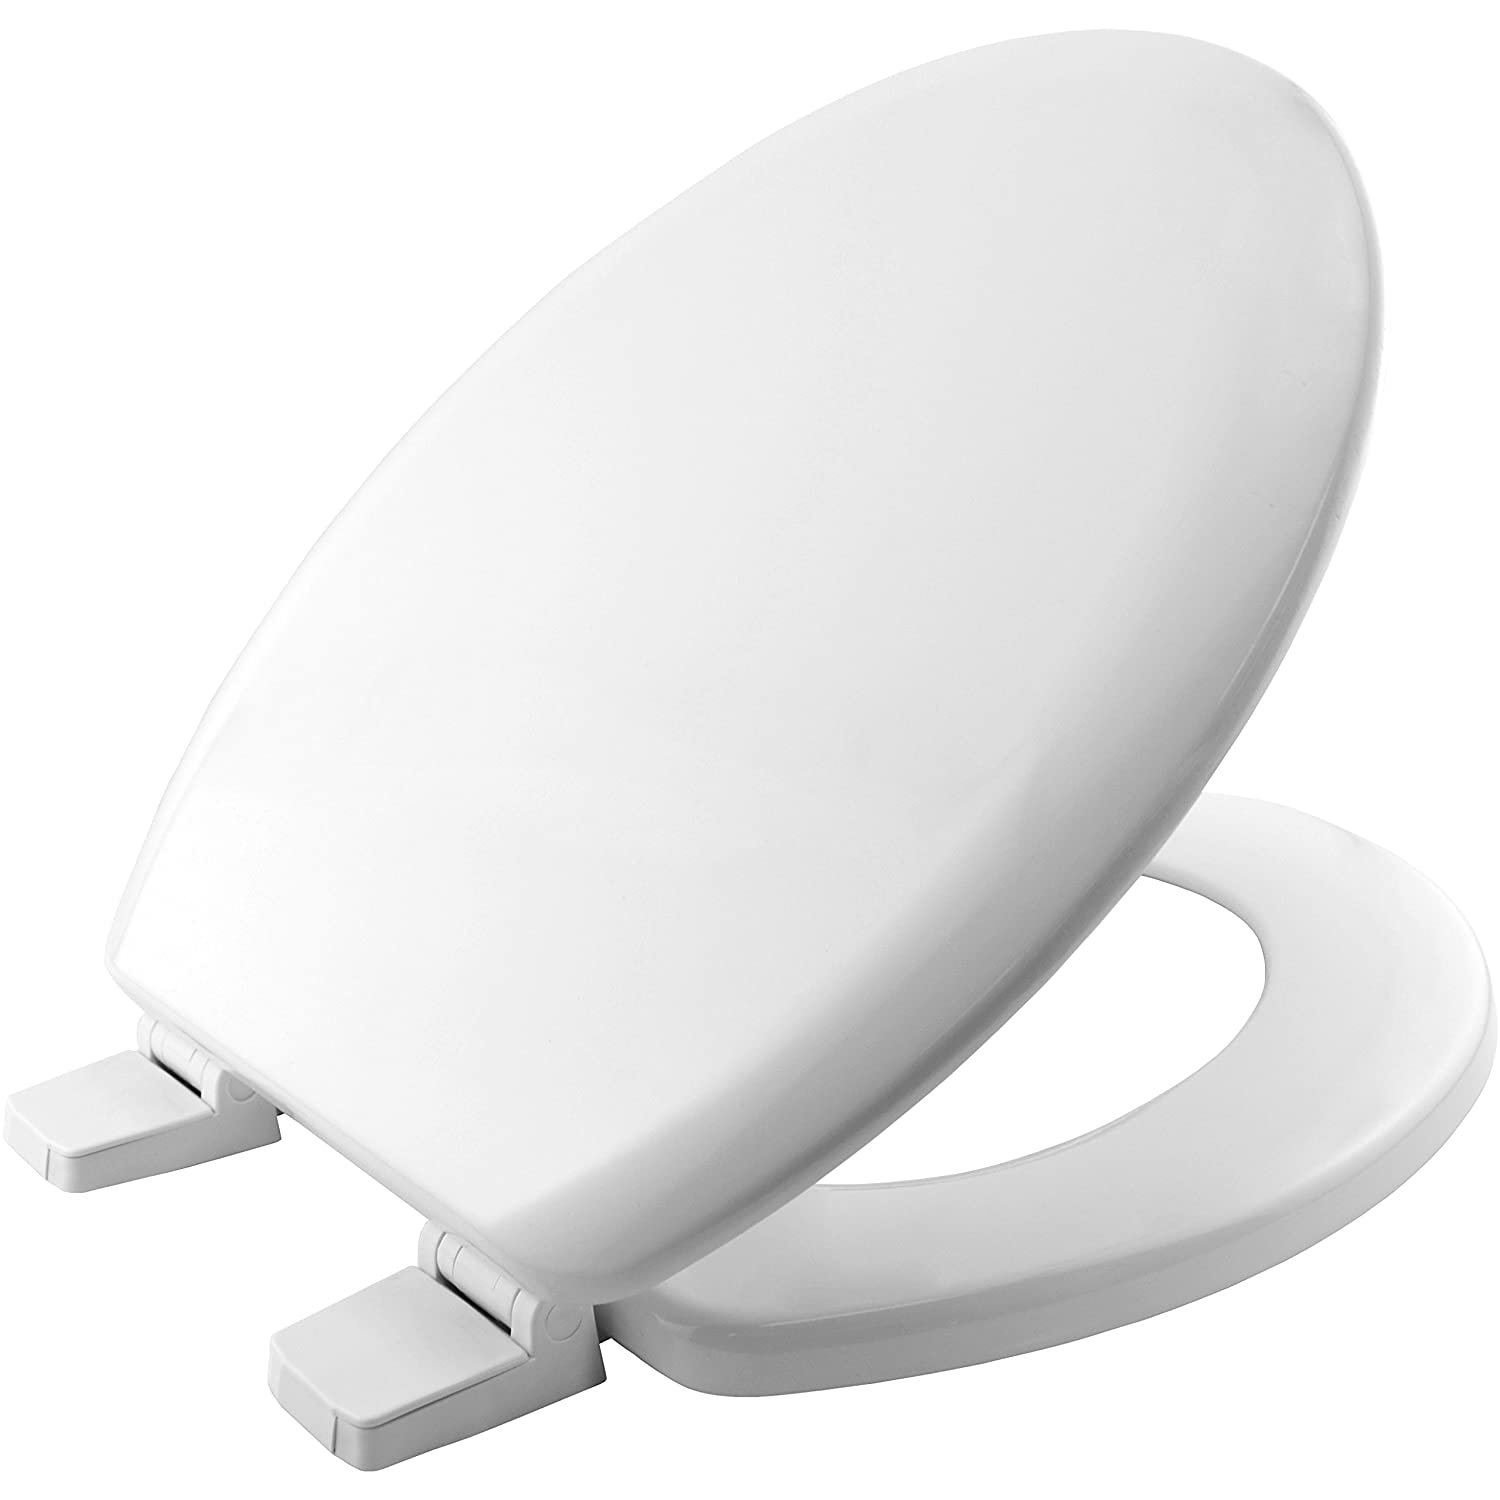 Excellent Bemis Chicago Stay Tight Toilet Seat White Ibusinesslaw Wood Chair Design Ideas Ibusinesslaworg